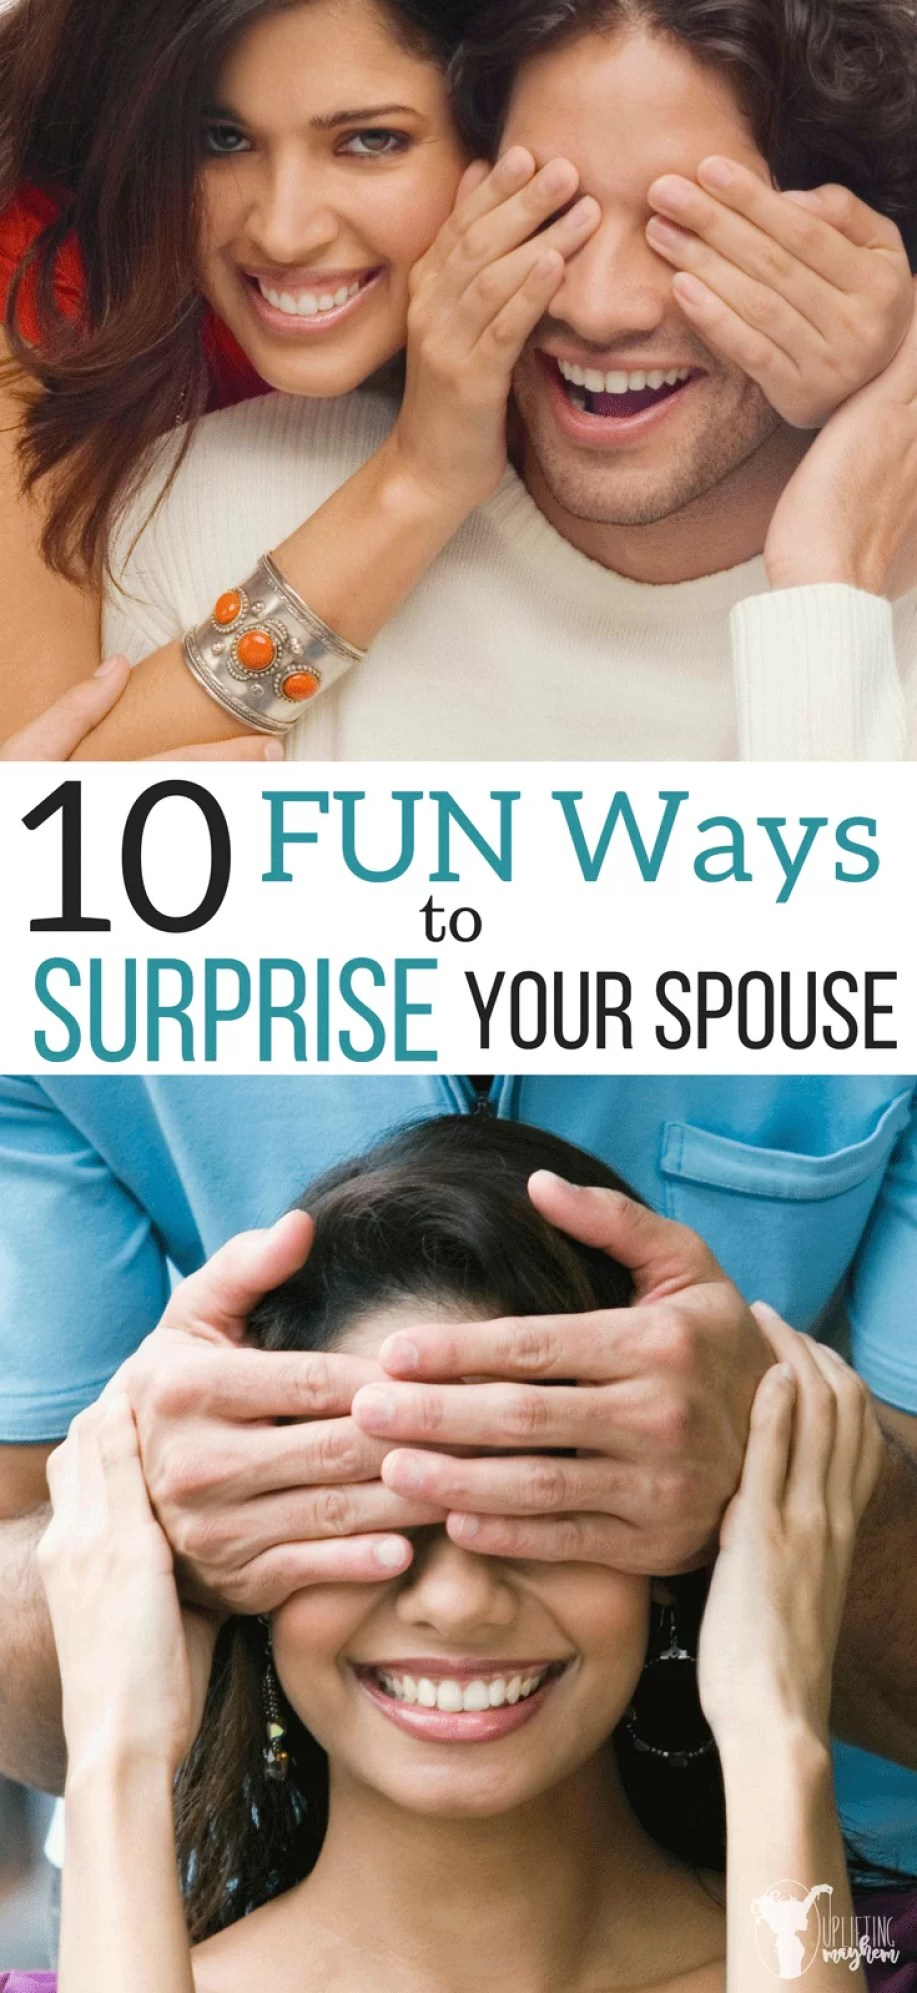 Liven up your marriage withe these fun ways to surprise your spouse! Spend time with your husband/wife and fall in love with them all over again!